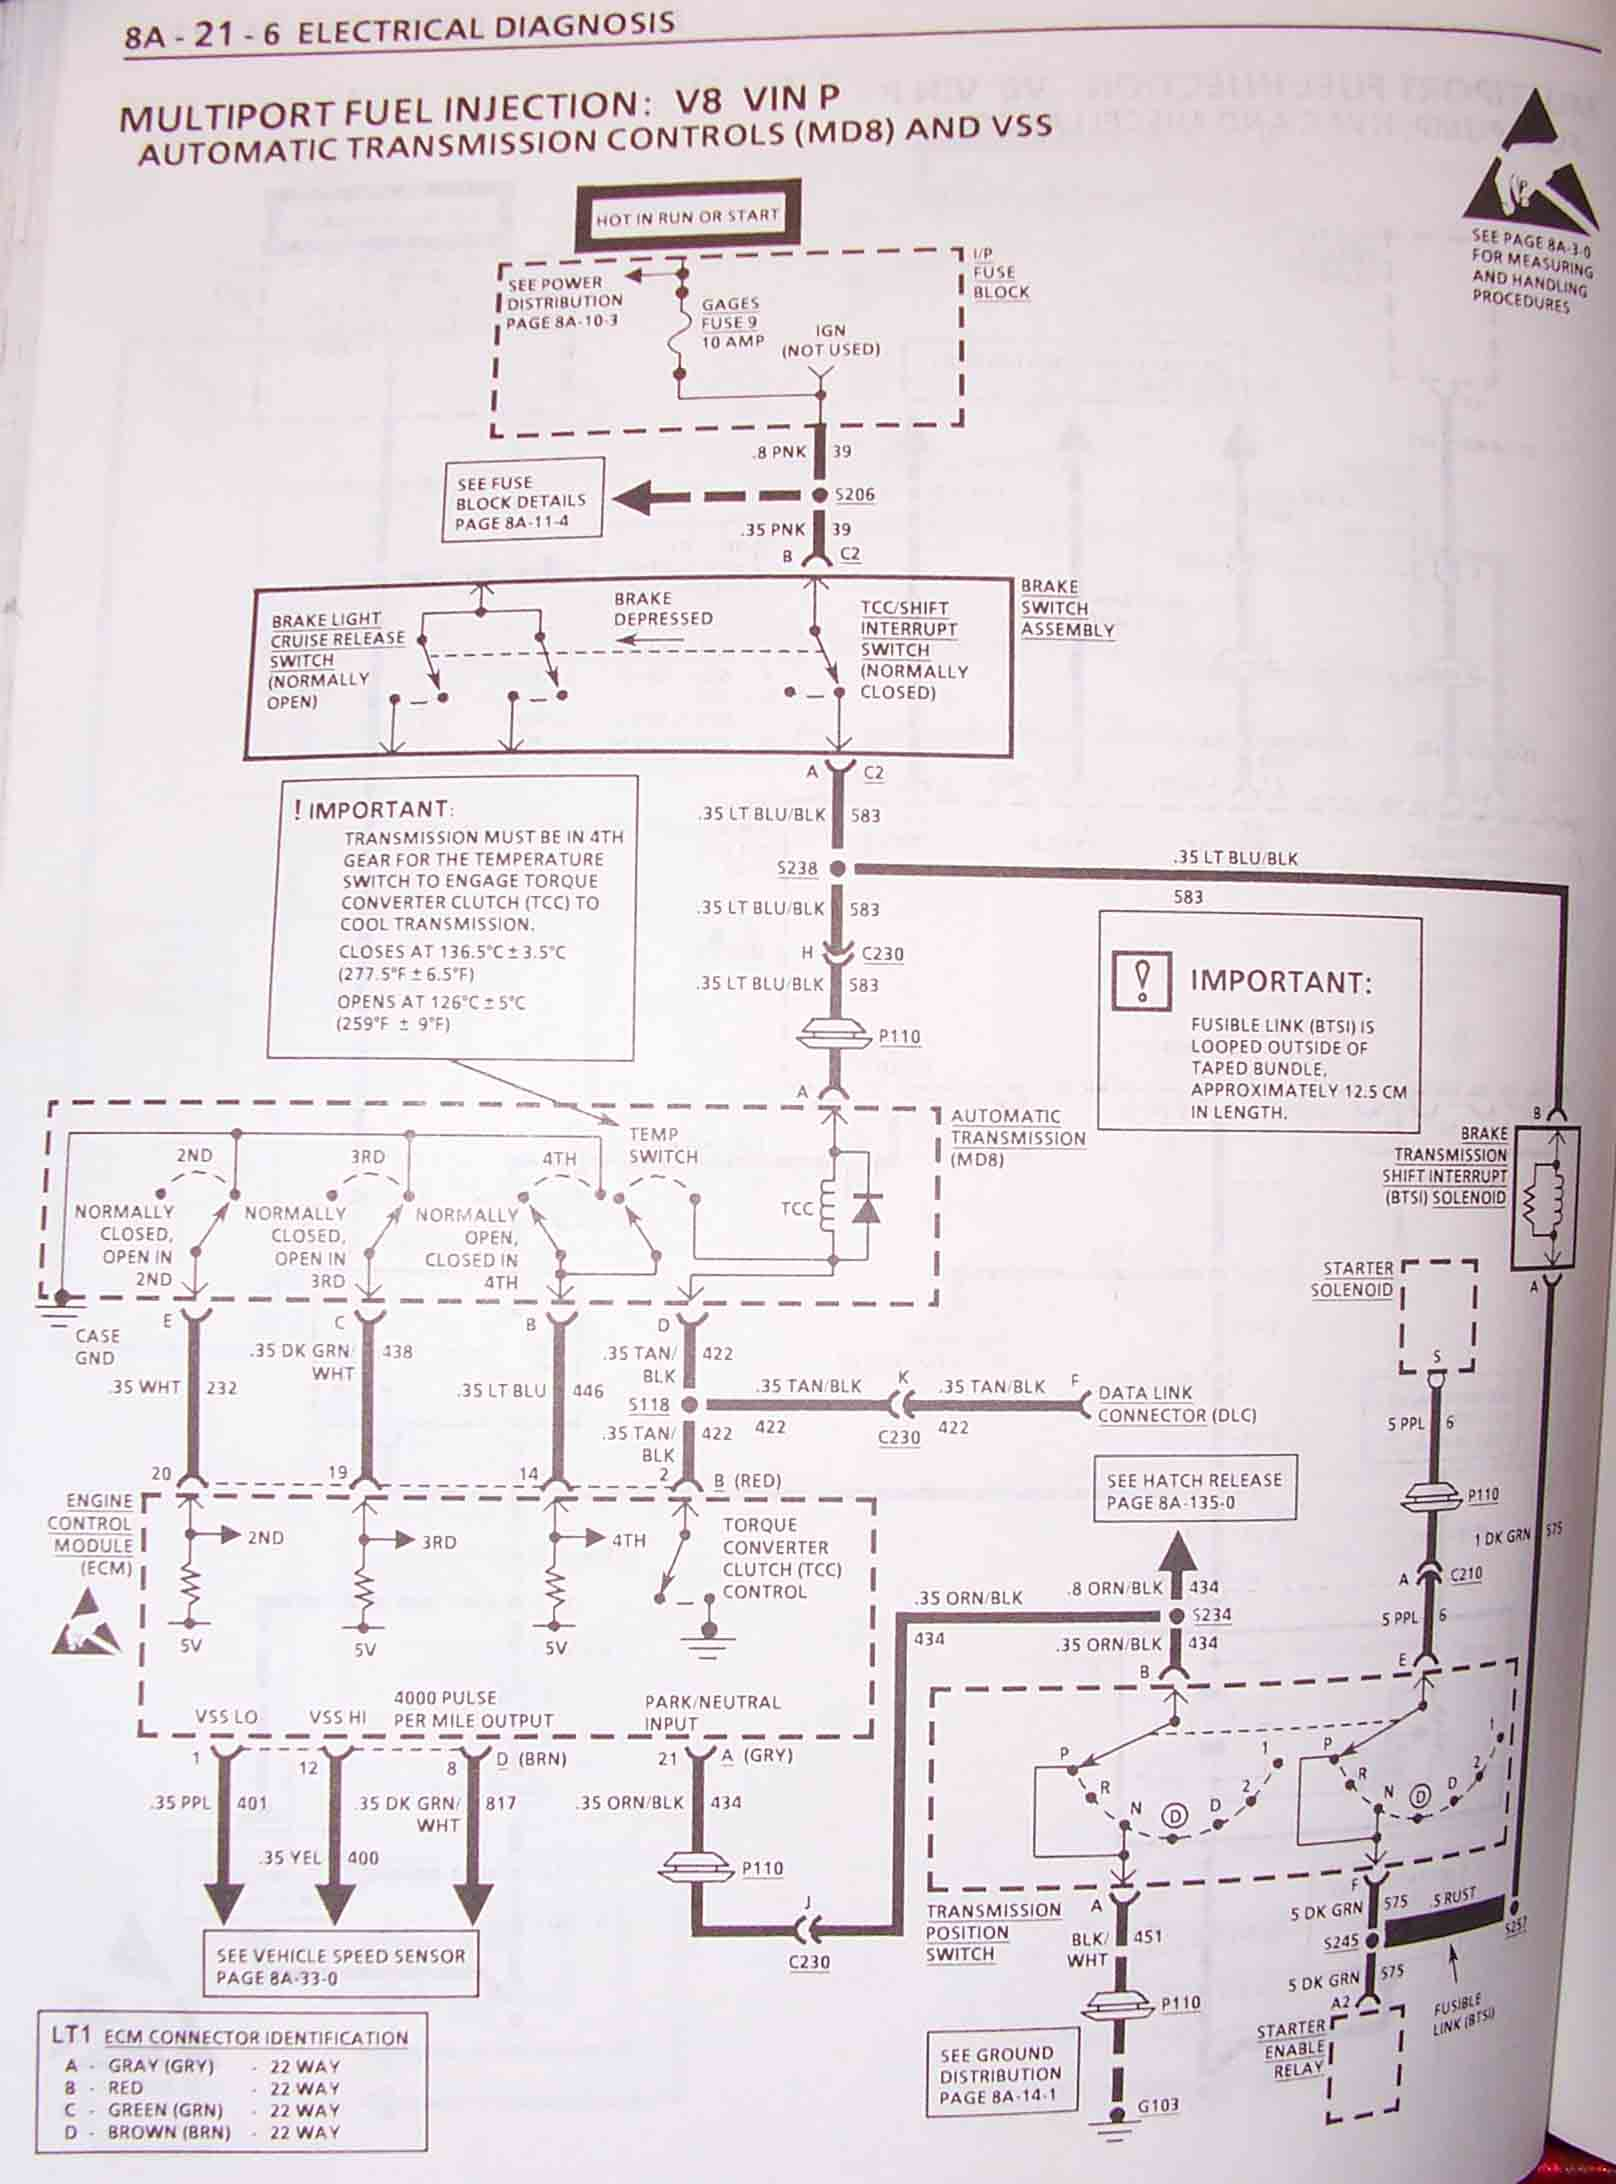 1993 Lt1 Engine Wiring Diagram Camaro Harness Information Auto Trans Controls Vss